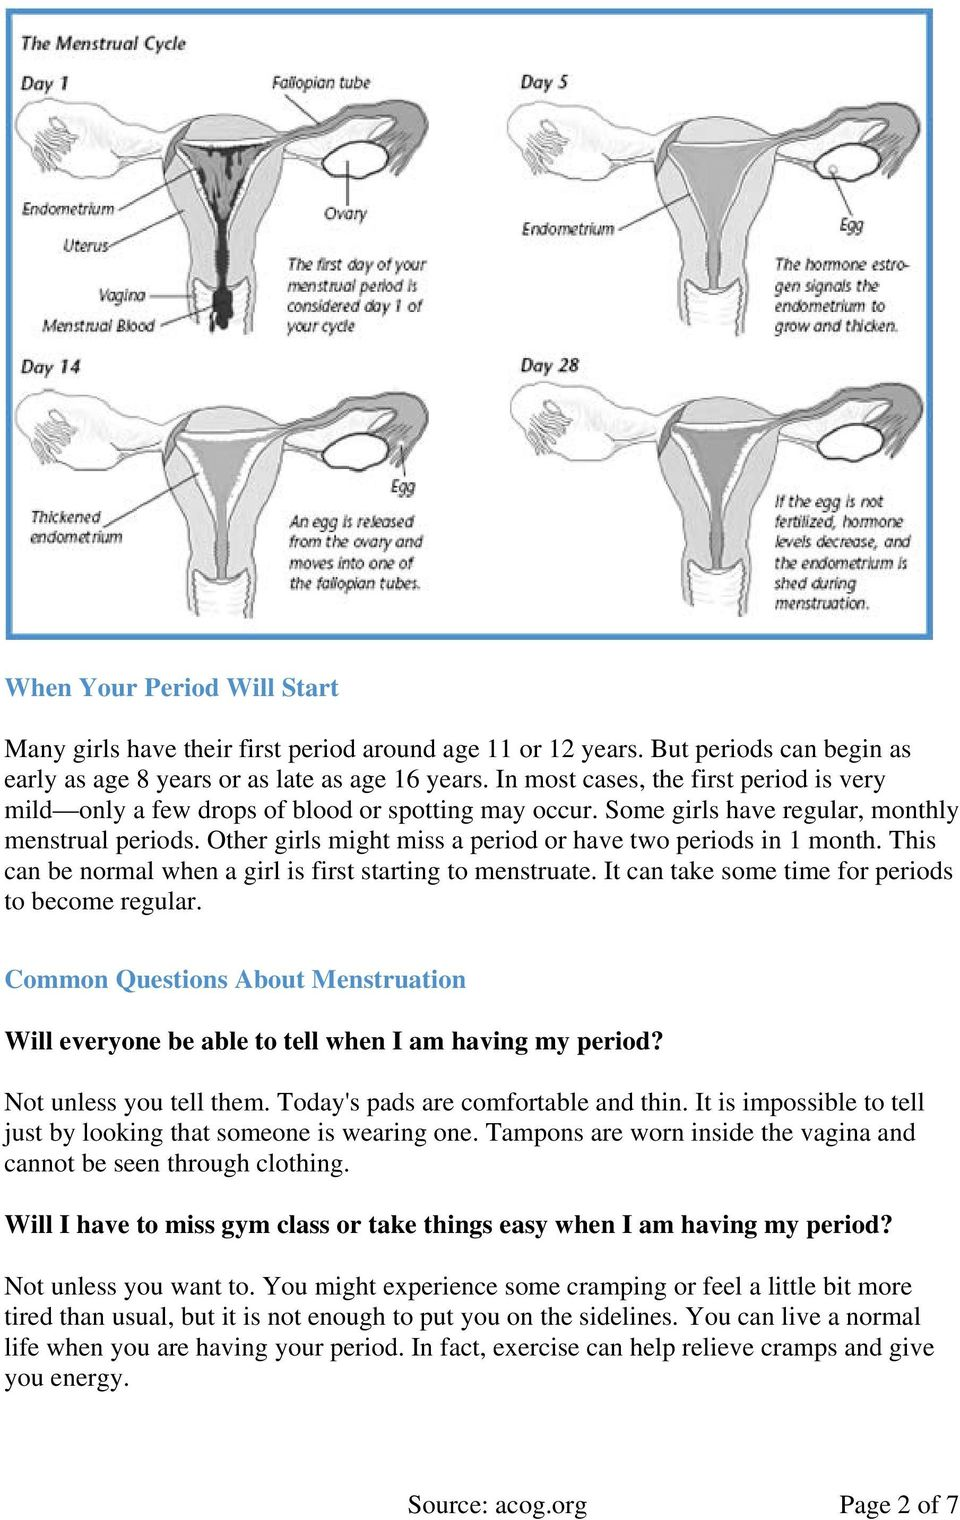 Other girls might miss a period or have two periods in 1 month. This can be normal when a girl is first starting to menstruate. It can take some time for periods to become regular.